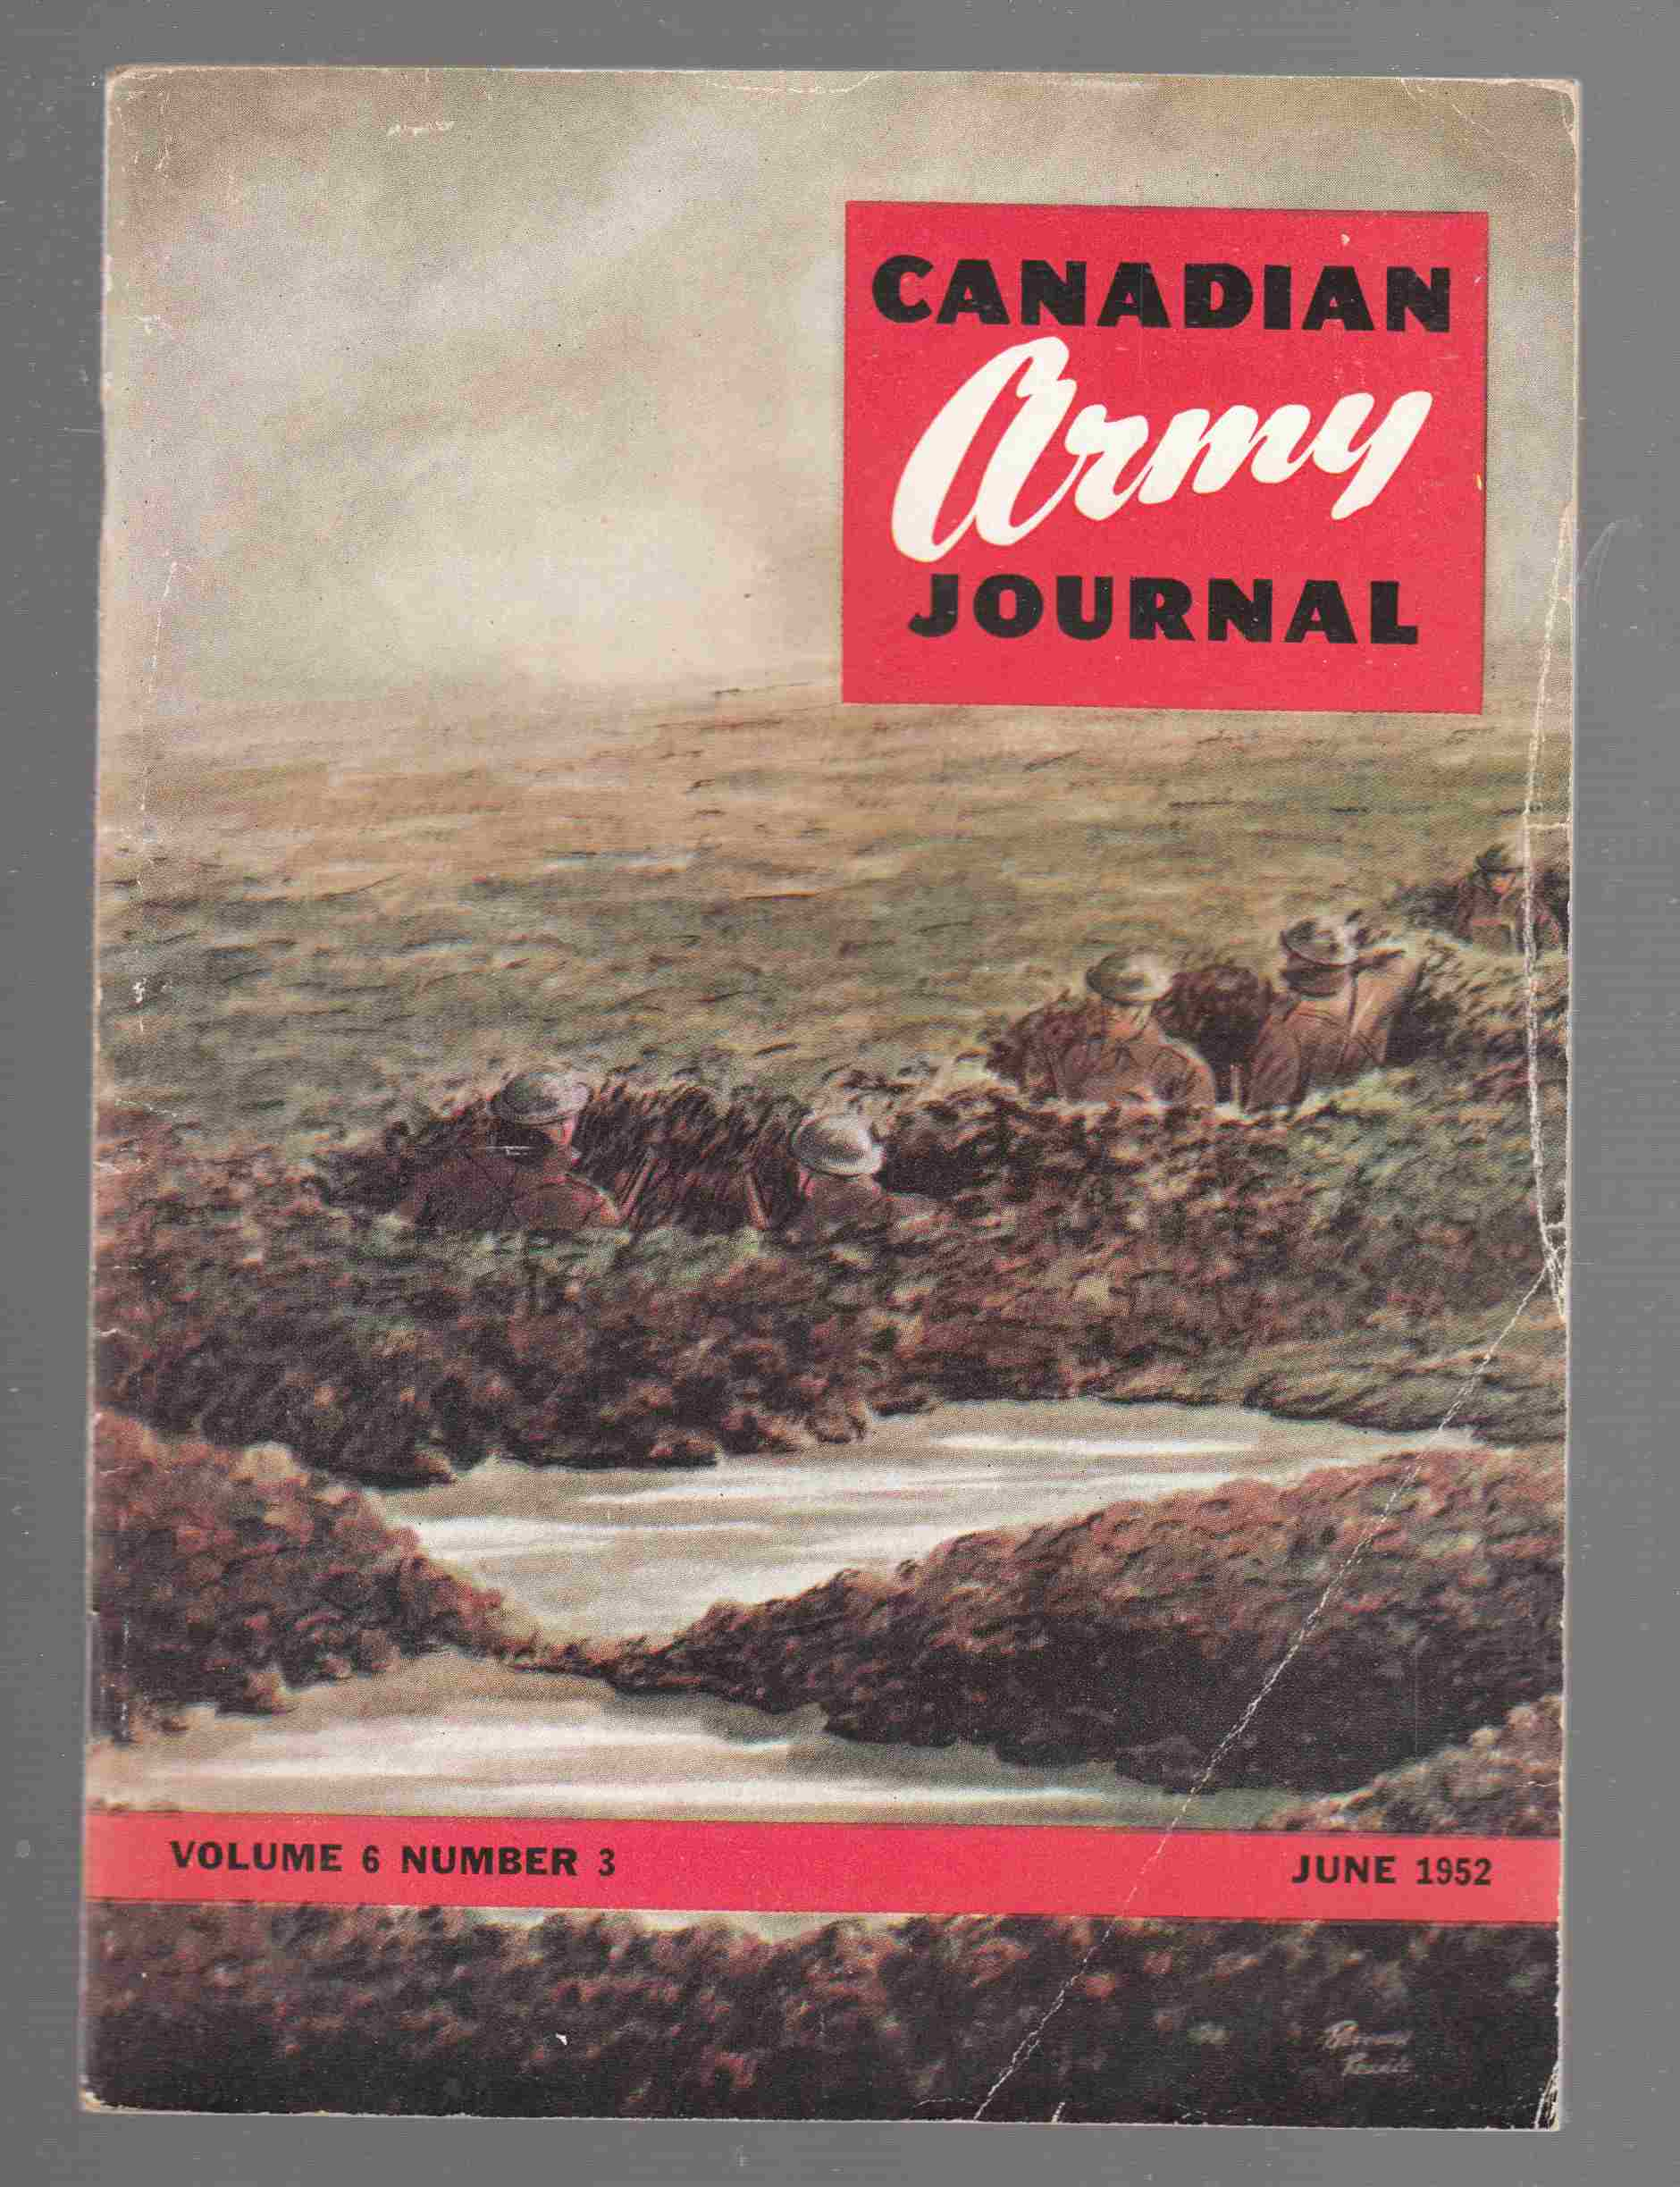 Image for Canadian Army Journal Volume 6 Number 3 June 1952